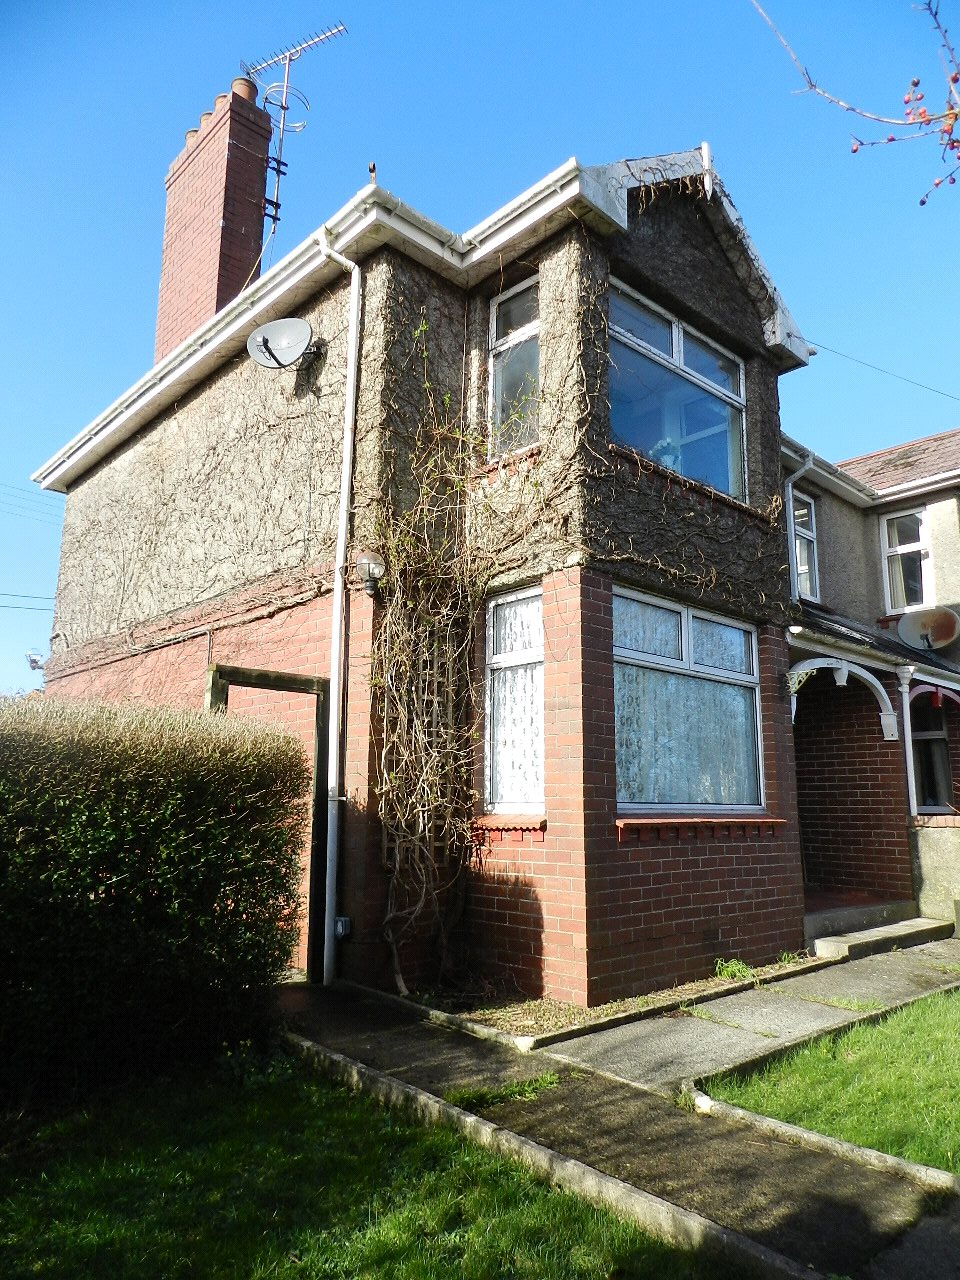 4 Bedrooms Semi Detached House for sale in Crowhill, Haverfordwest, Pembrokeshire